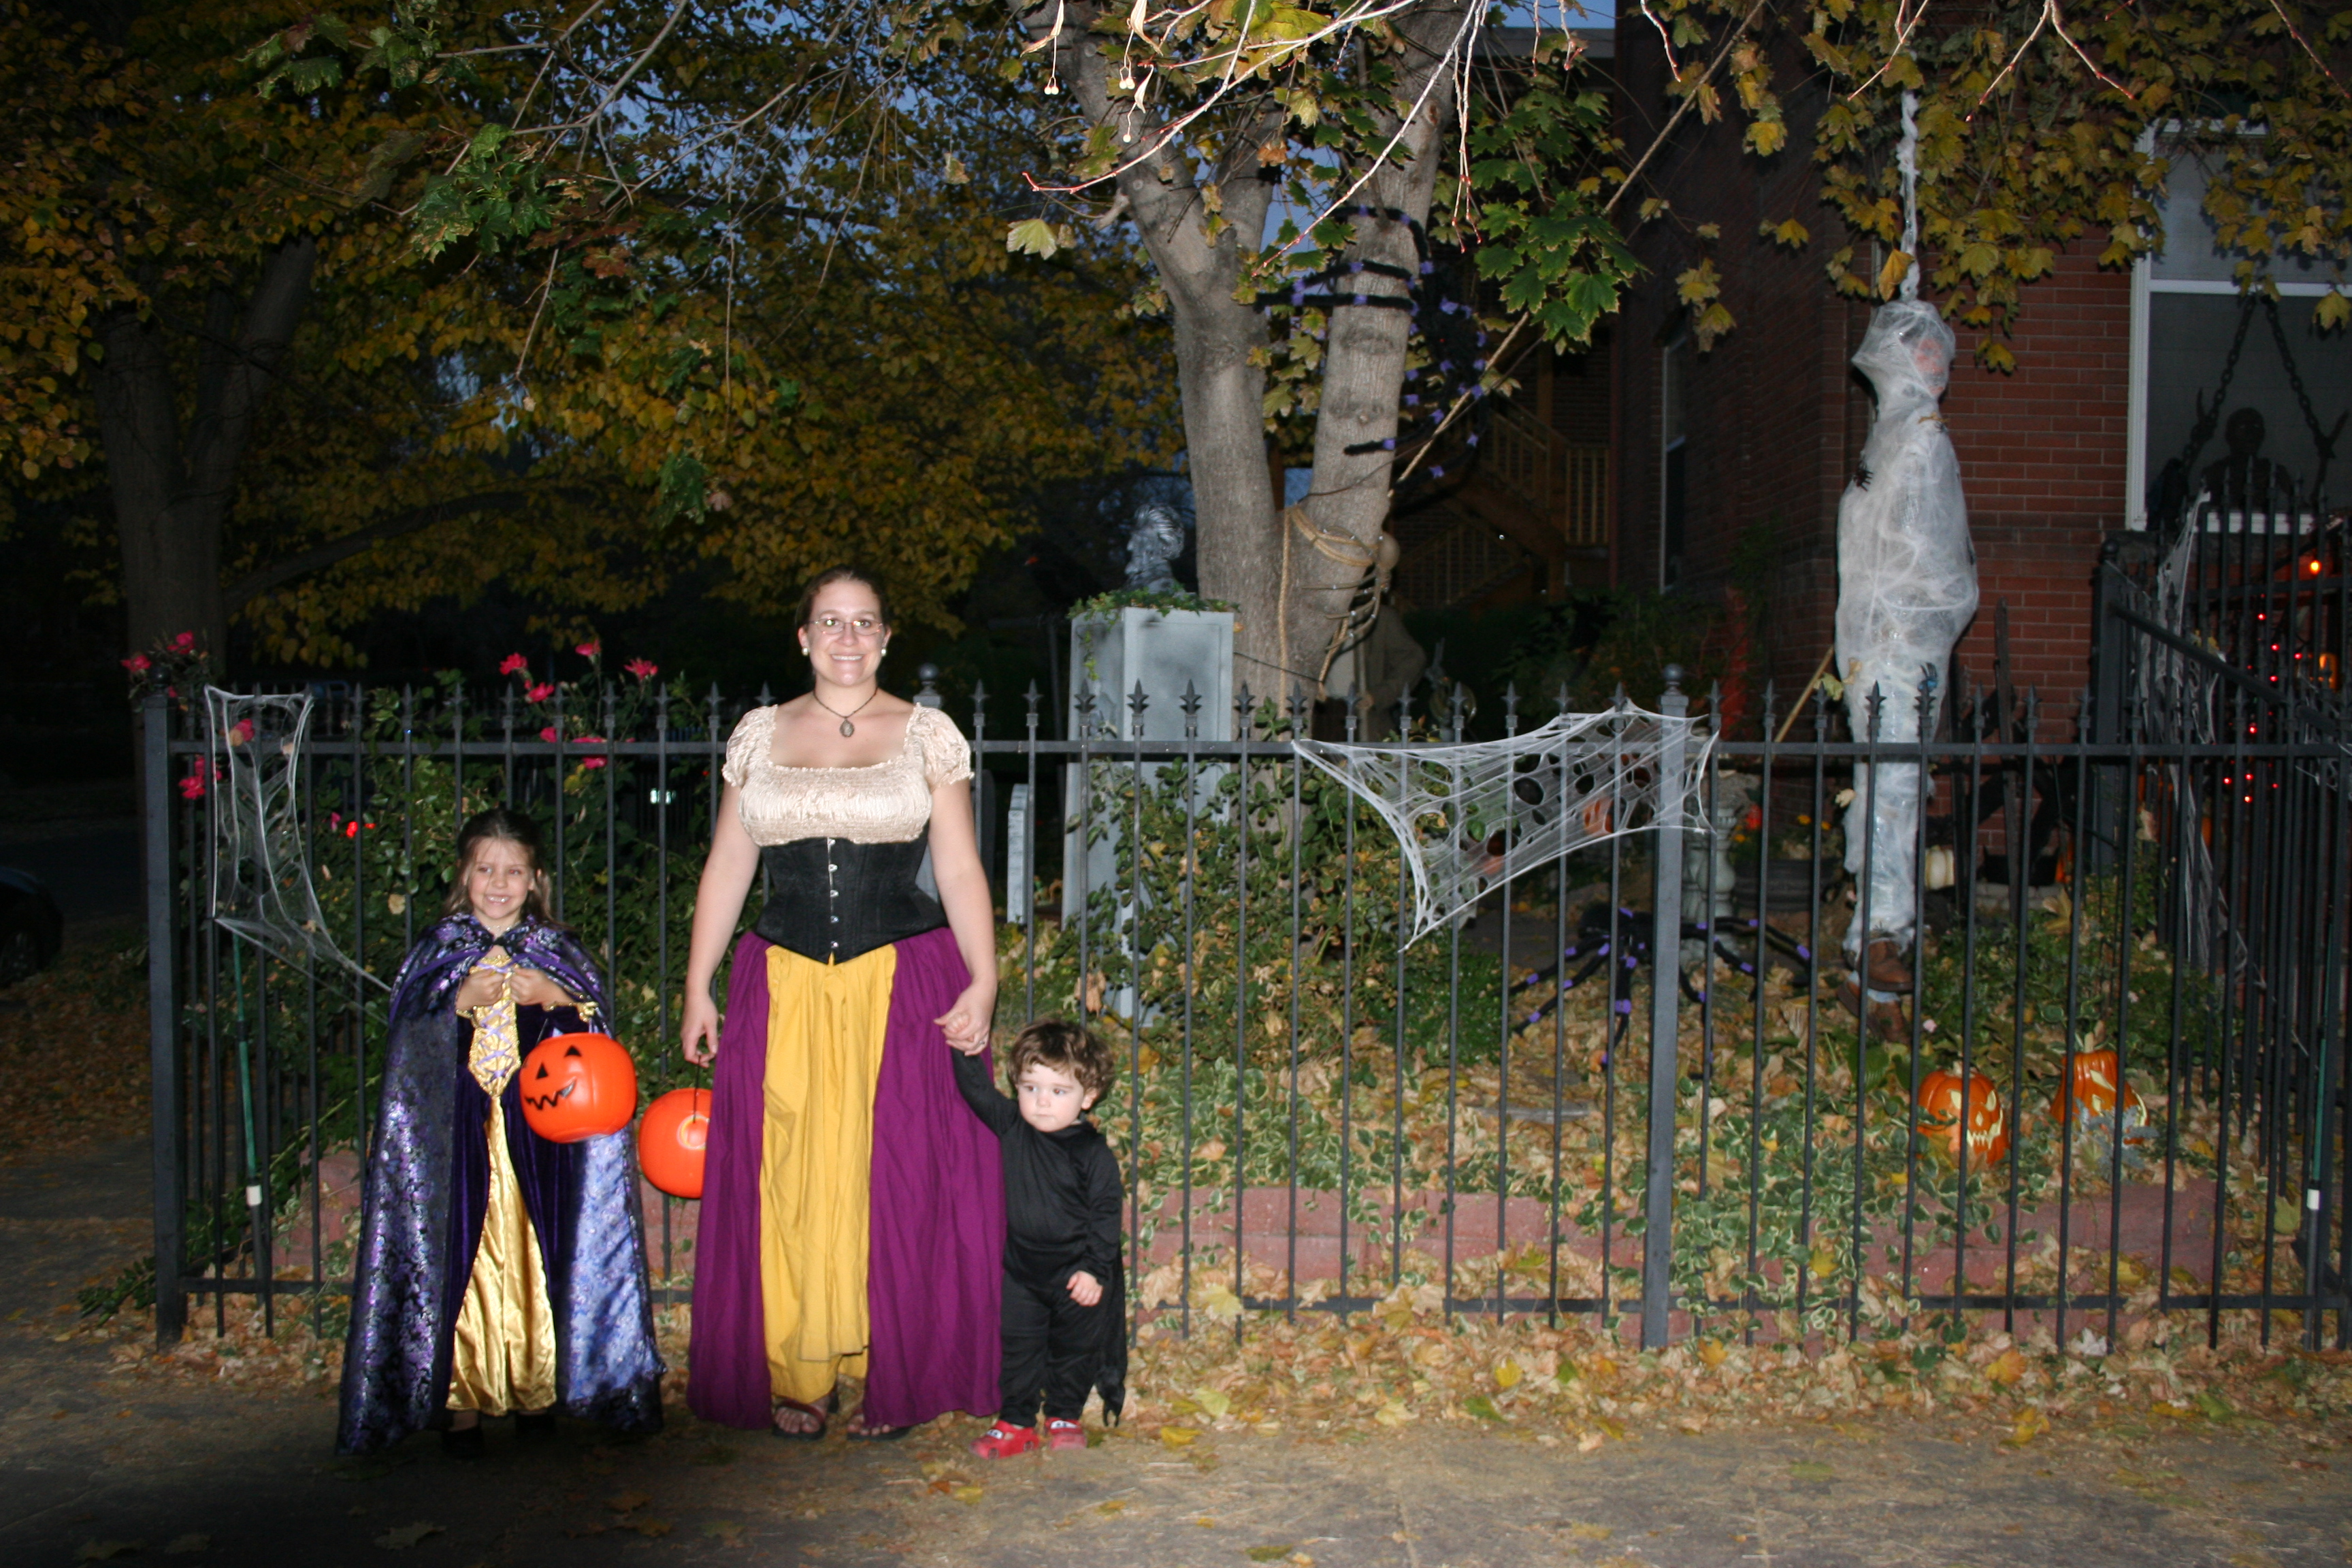 Outside the haunted house.